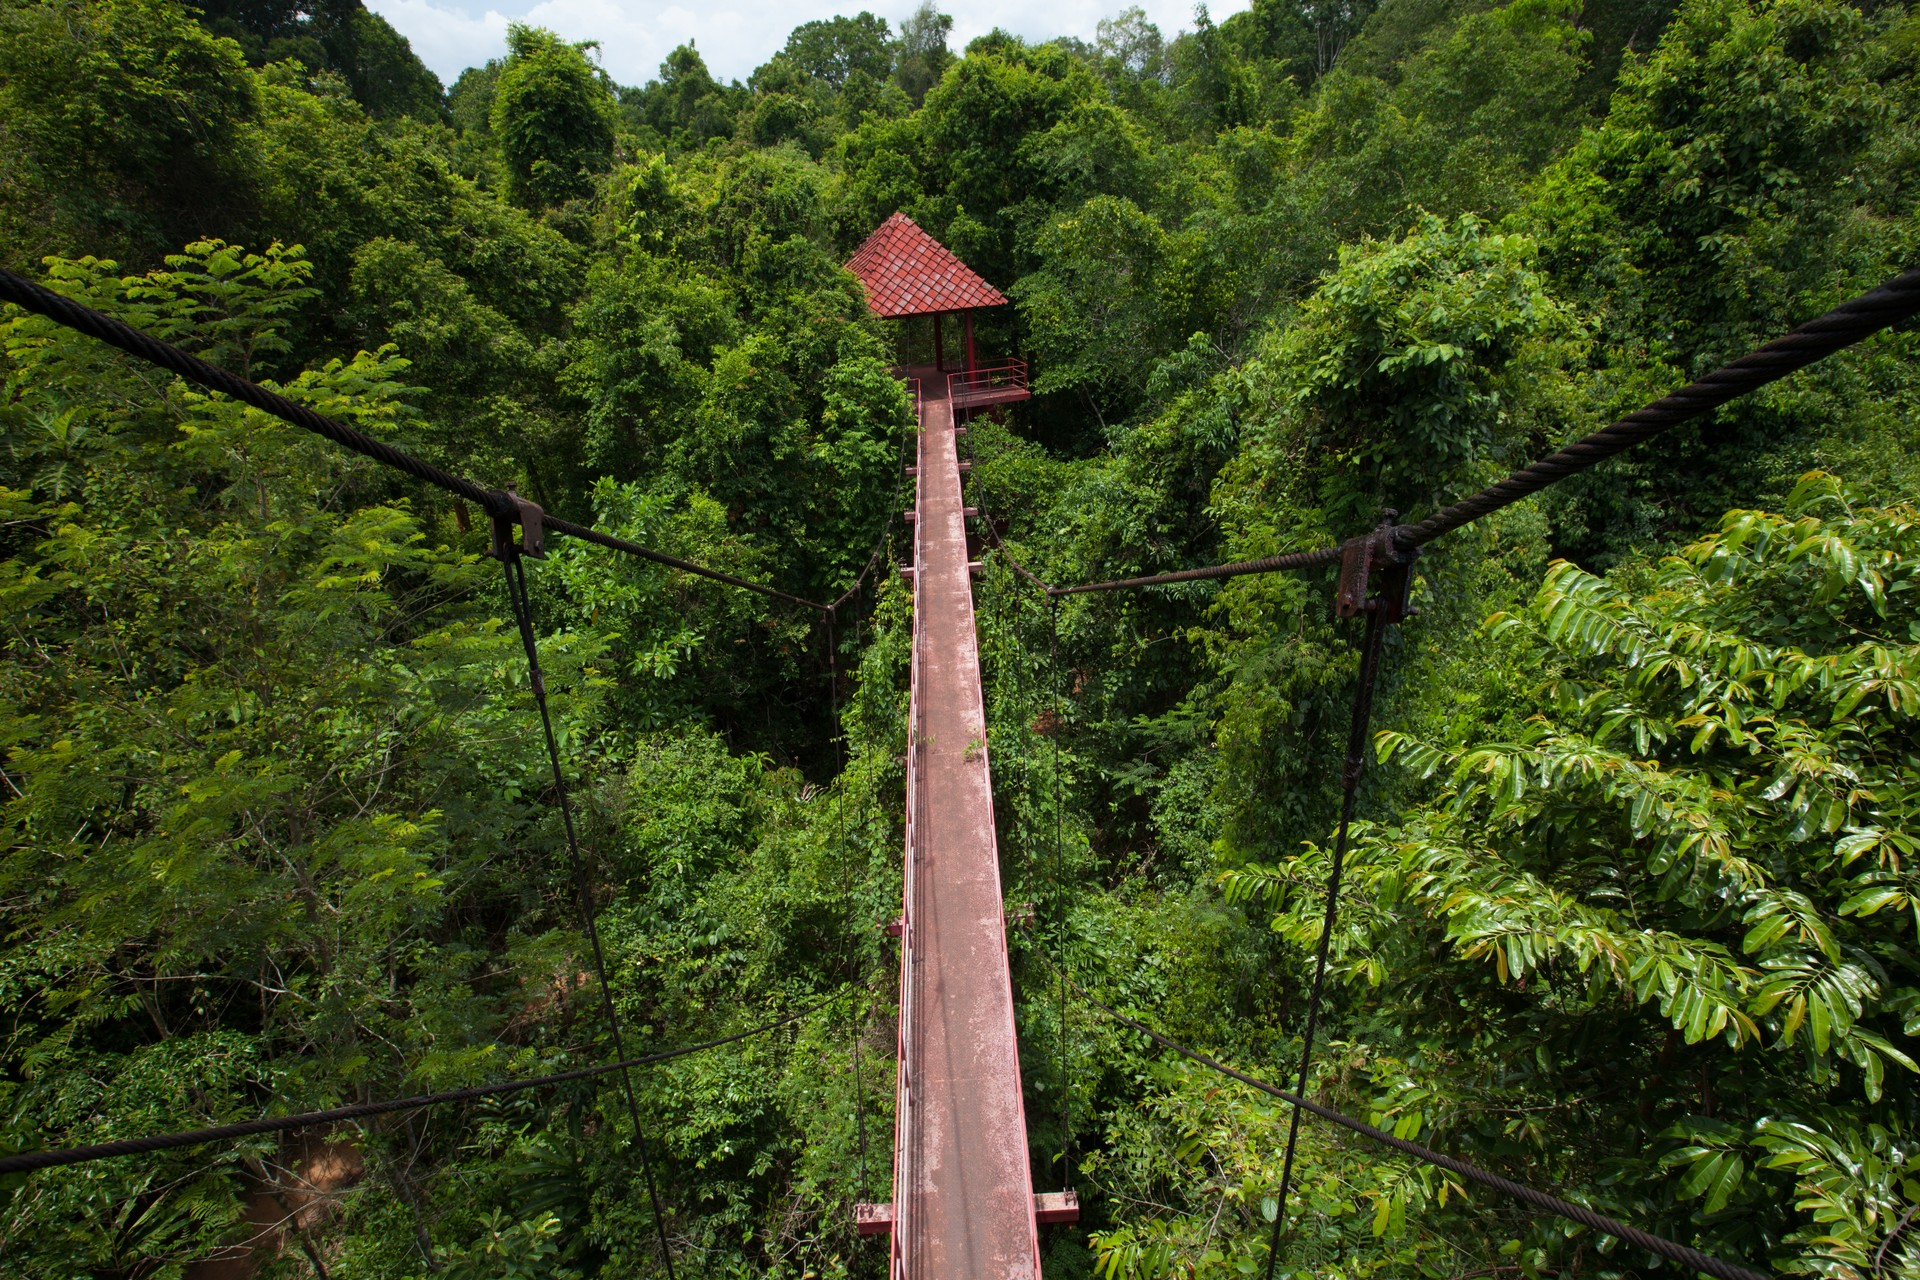 A treetop canopy in the Danum Valley, Malaysia